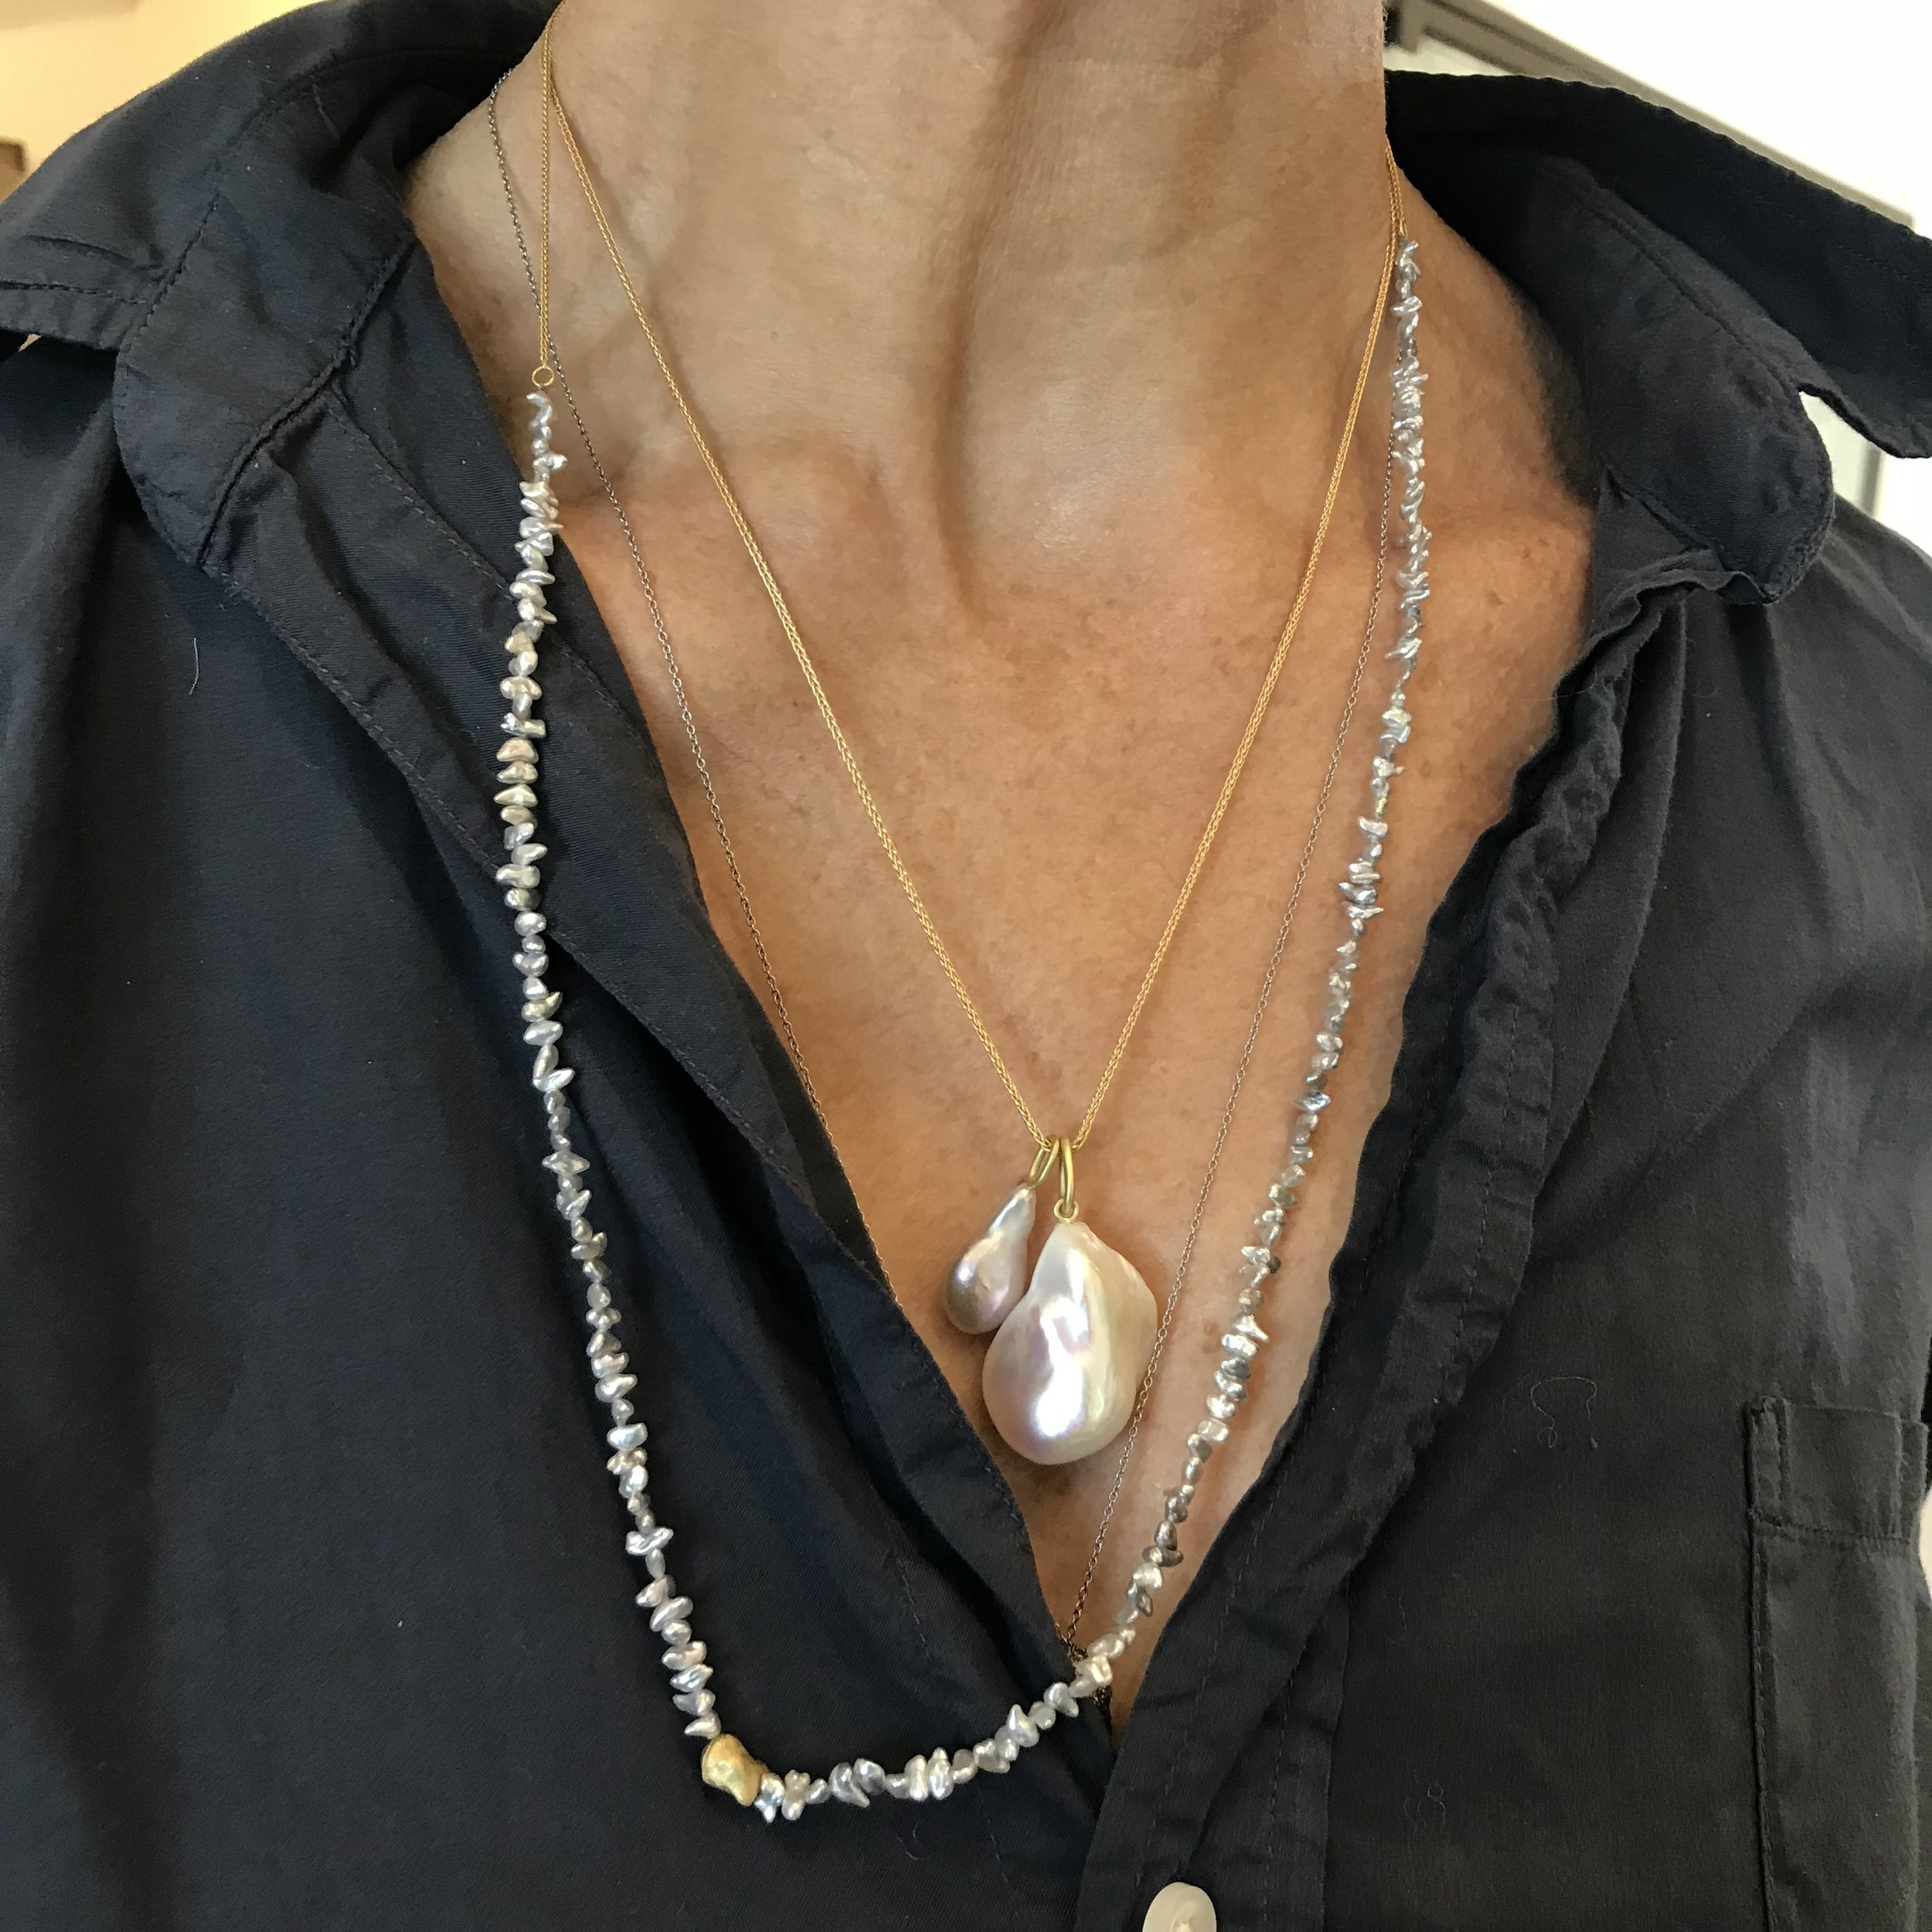 Tiny Keshi Pearl Necklace with 18k Gold Bead and Chain